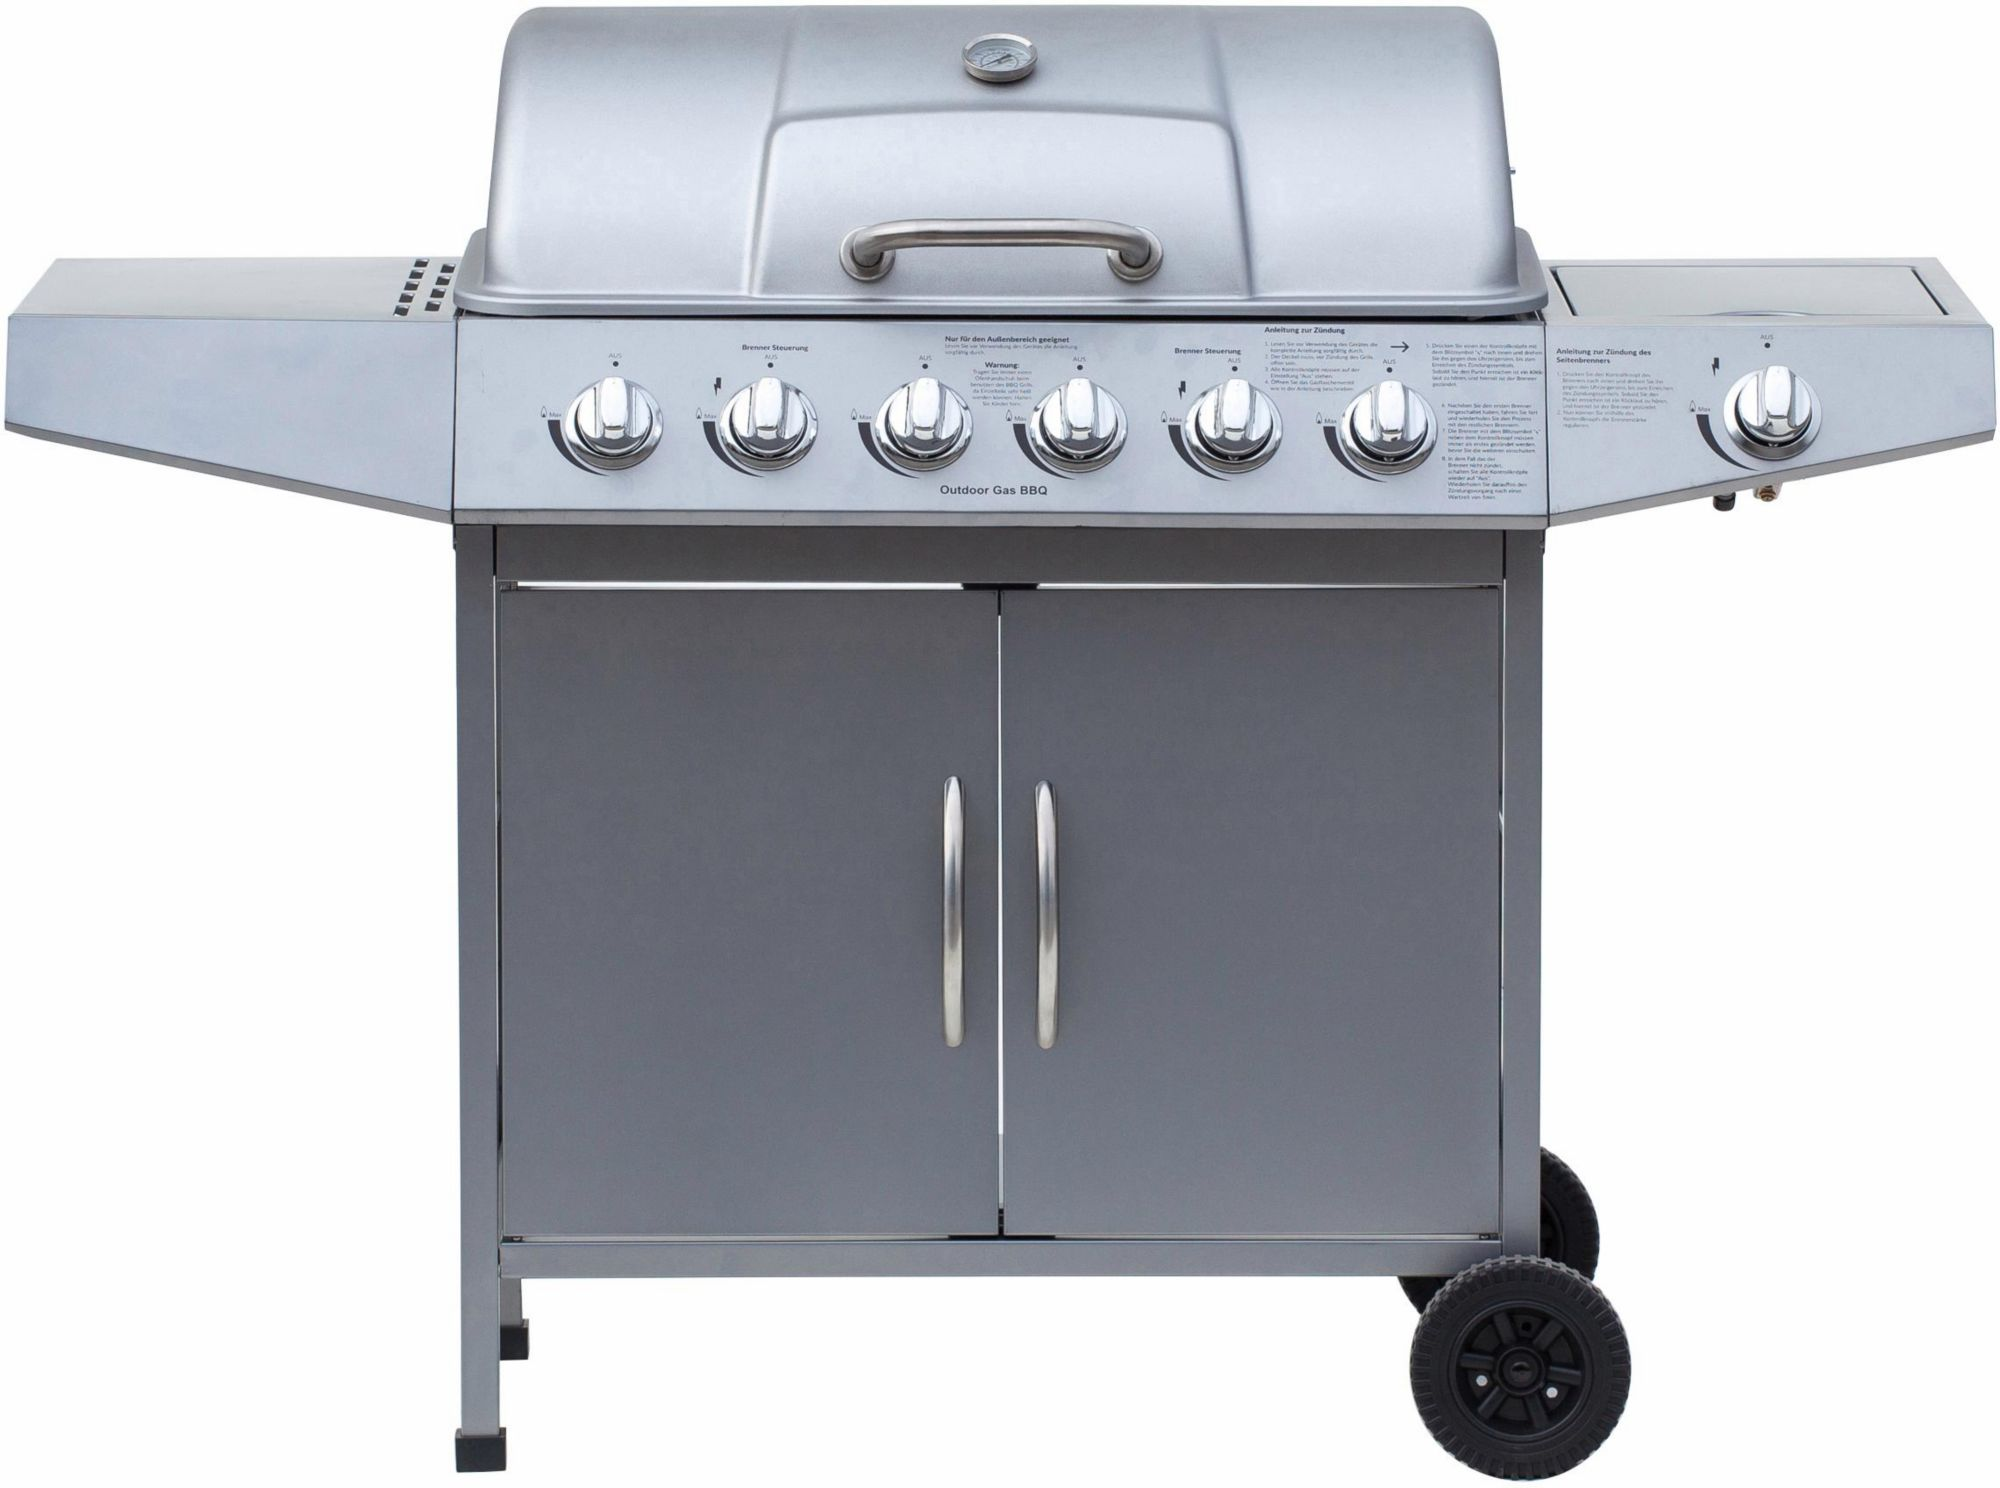 Rösle Gasgrill Angebot : Napoleon gasgrills mit sizzle zone